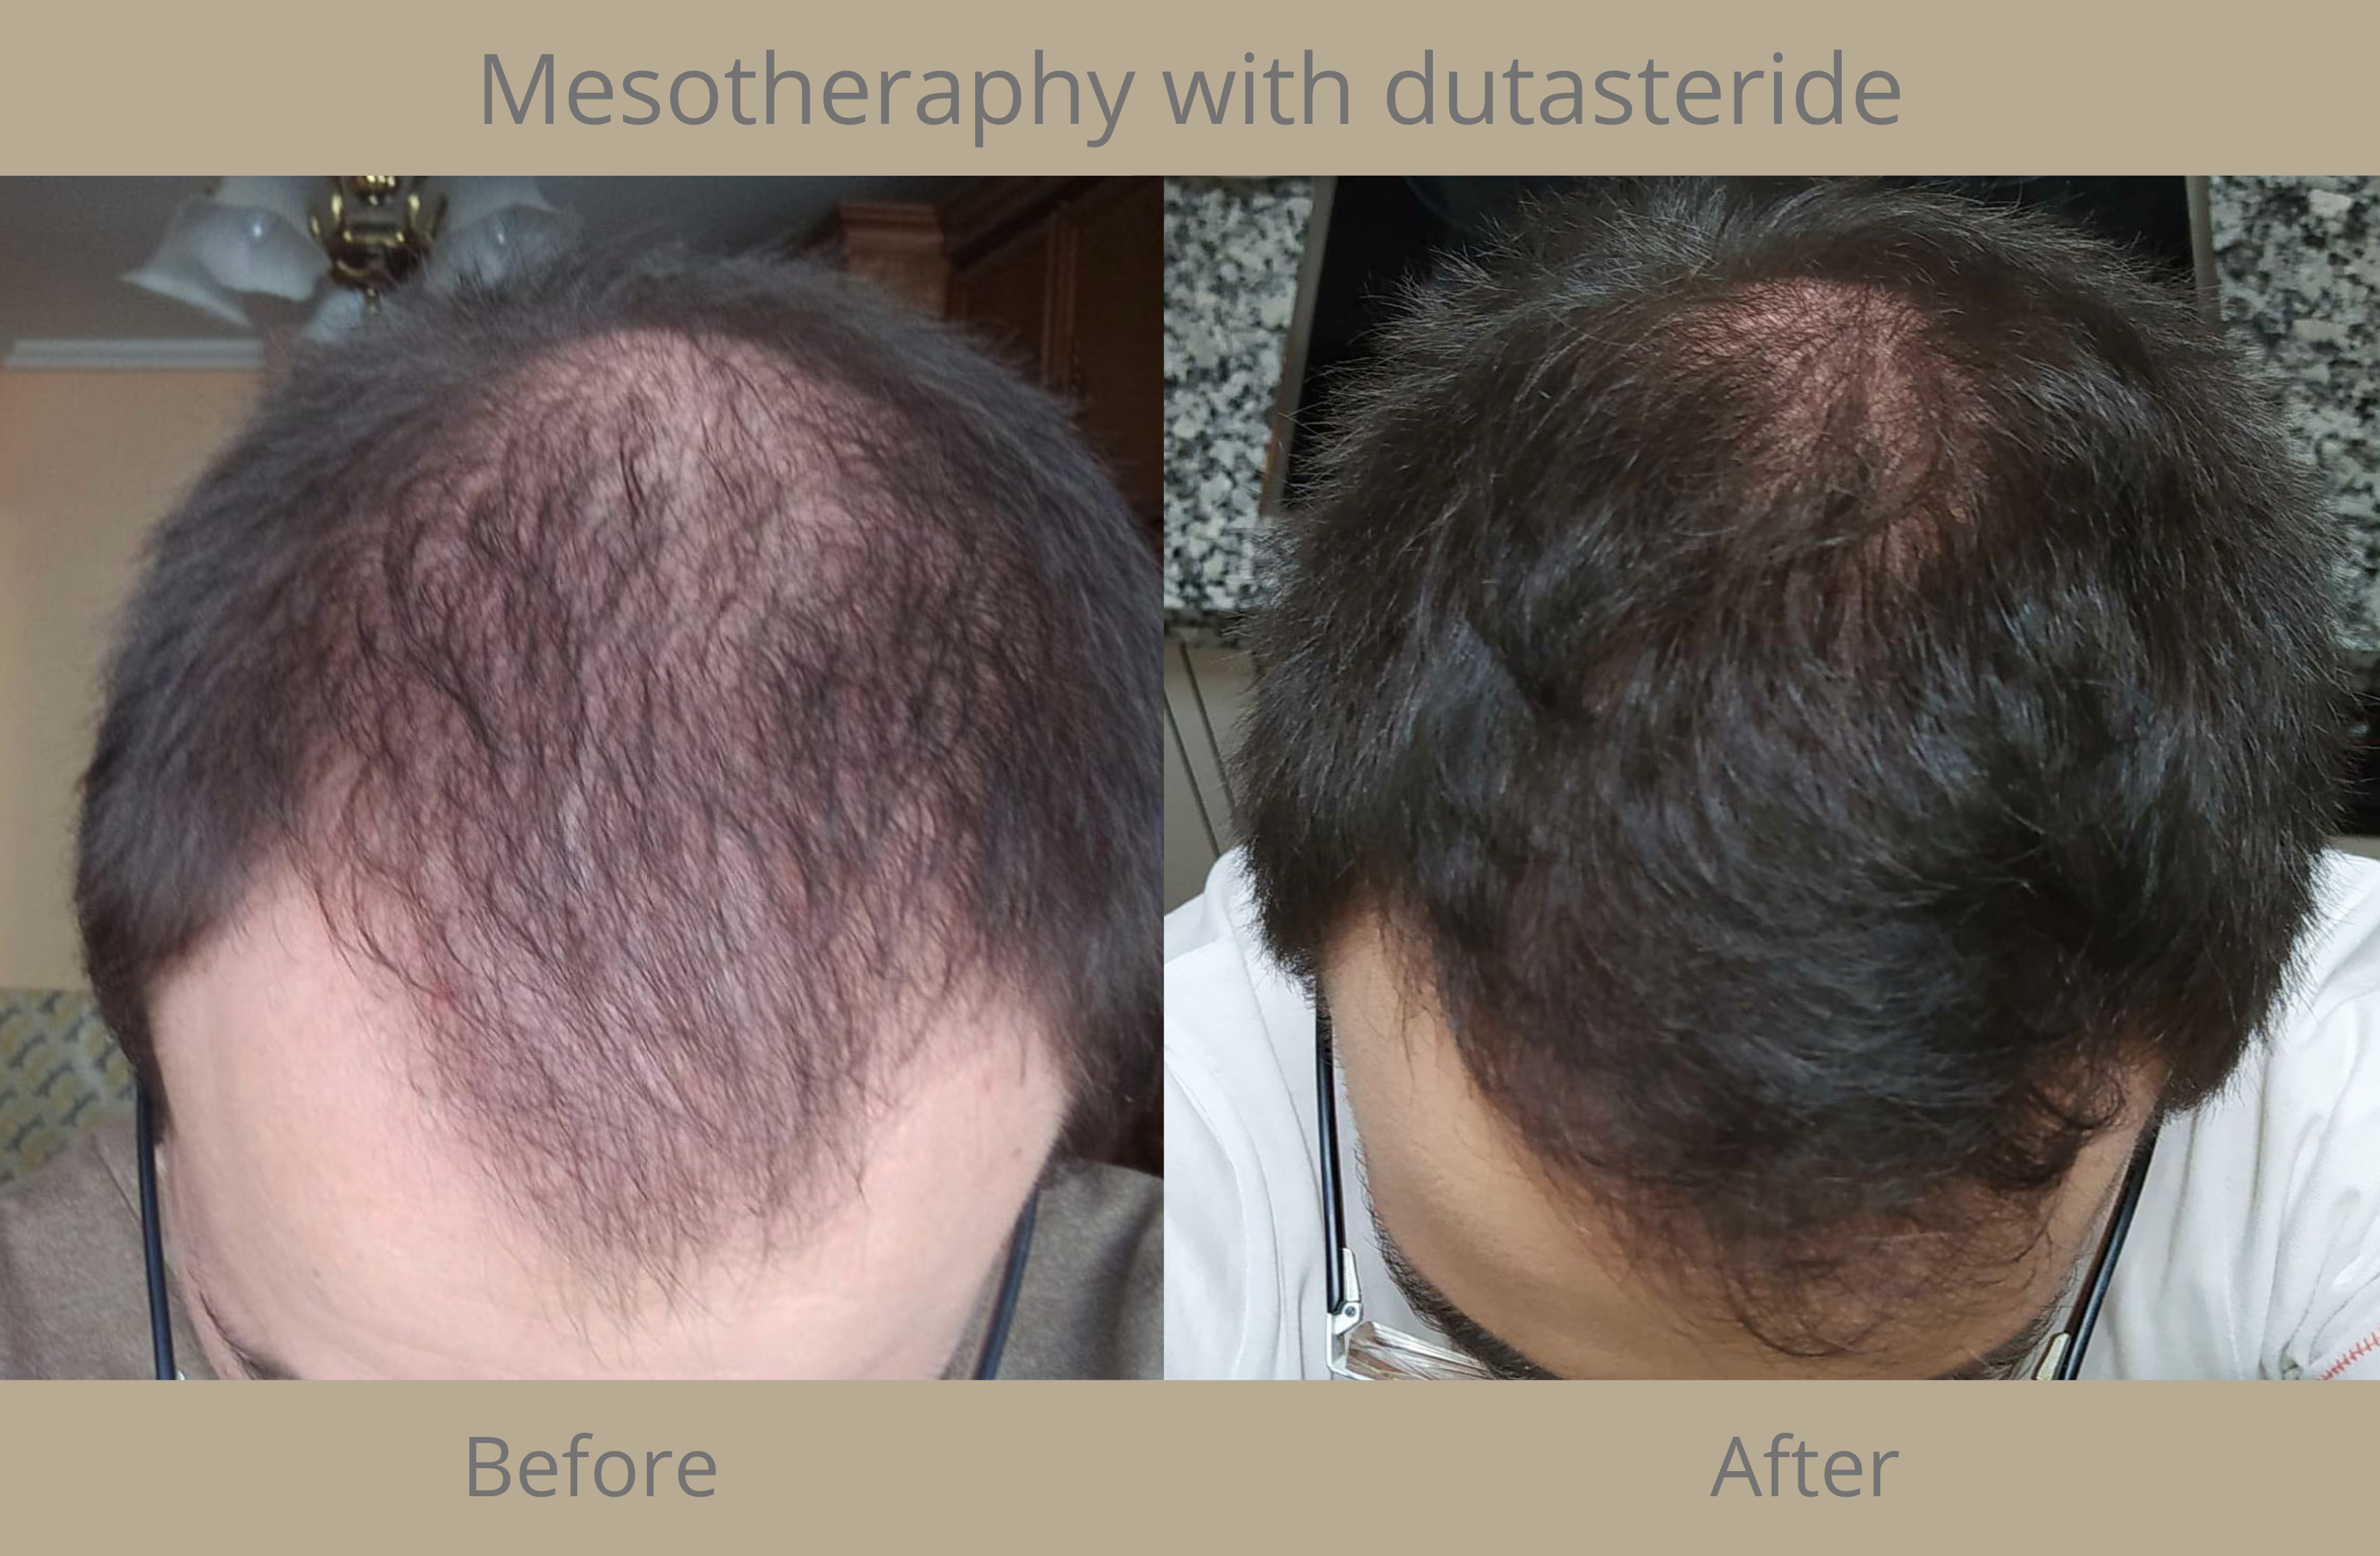 capillary mesotherapy with dutasteride